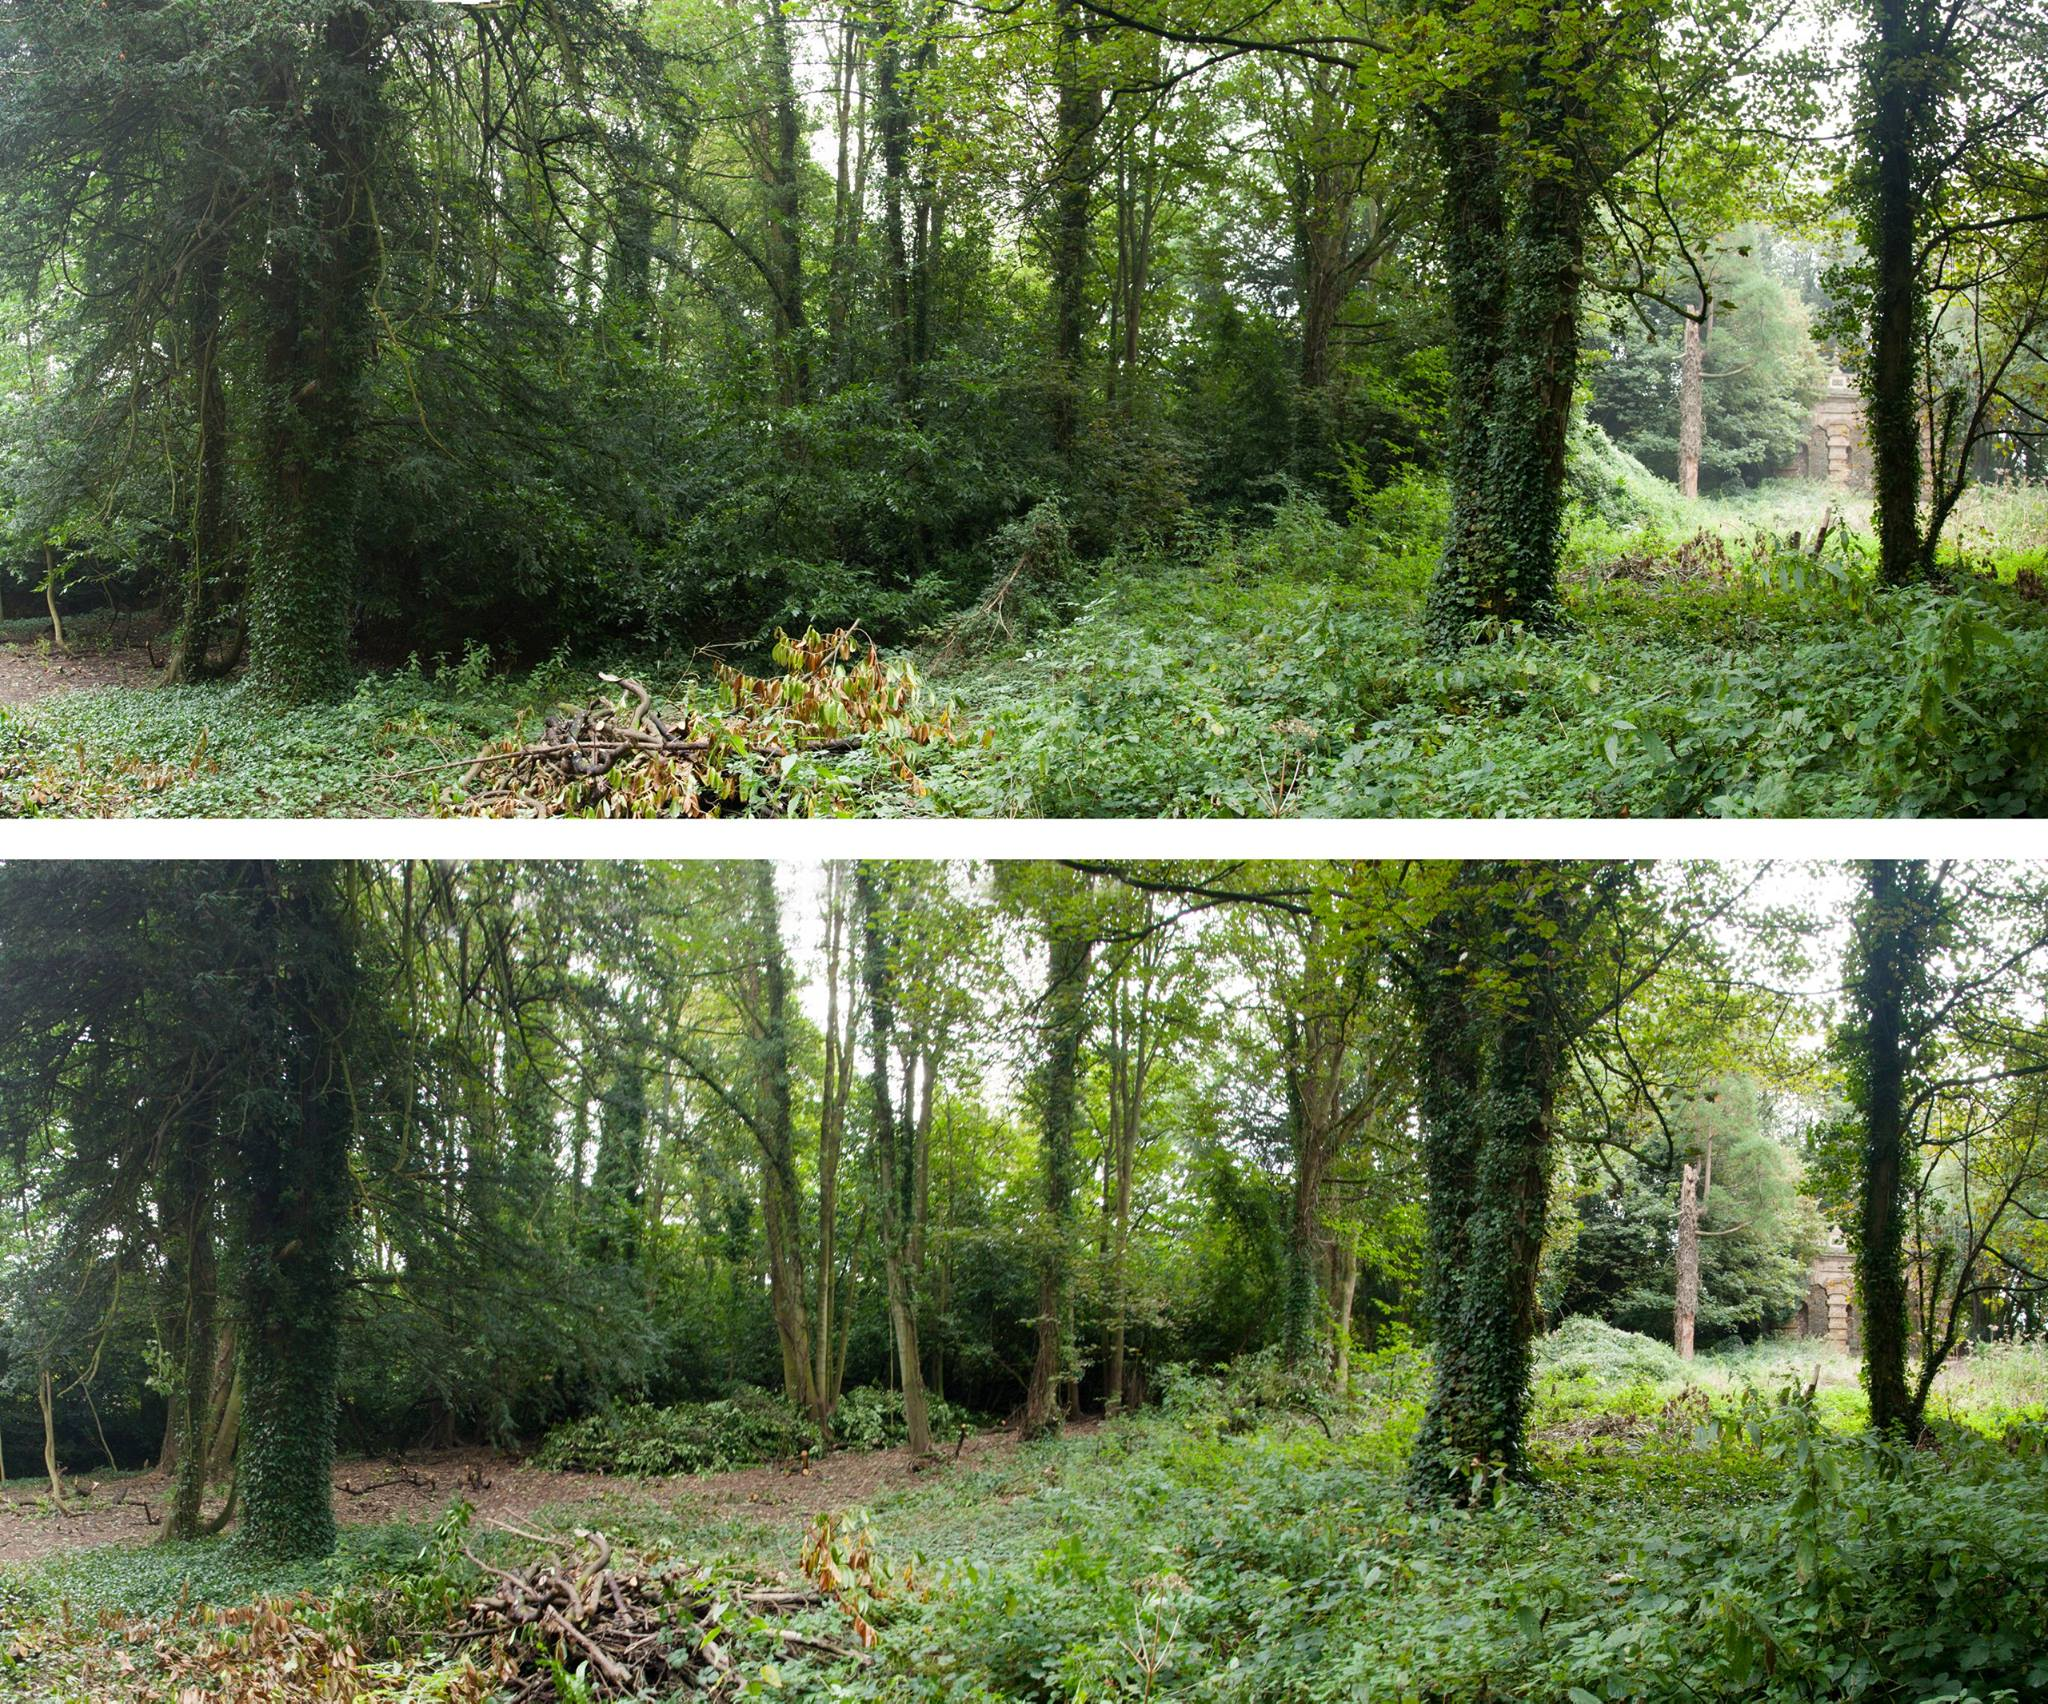 Looking from the ponds towards the nest of laurel before and after work. The Echo makes an appearance on the right